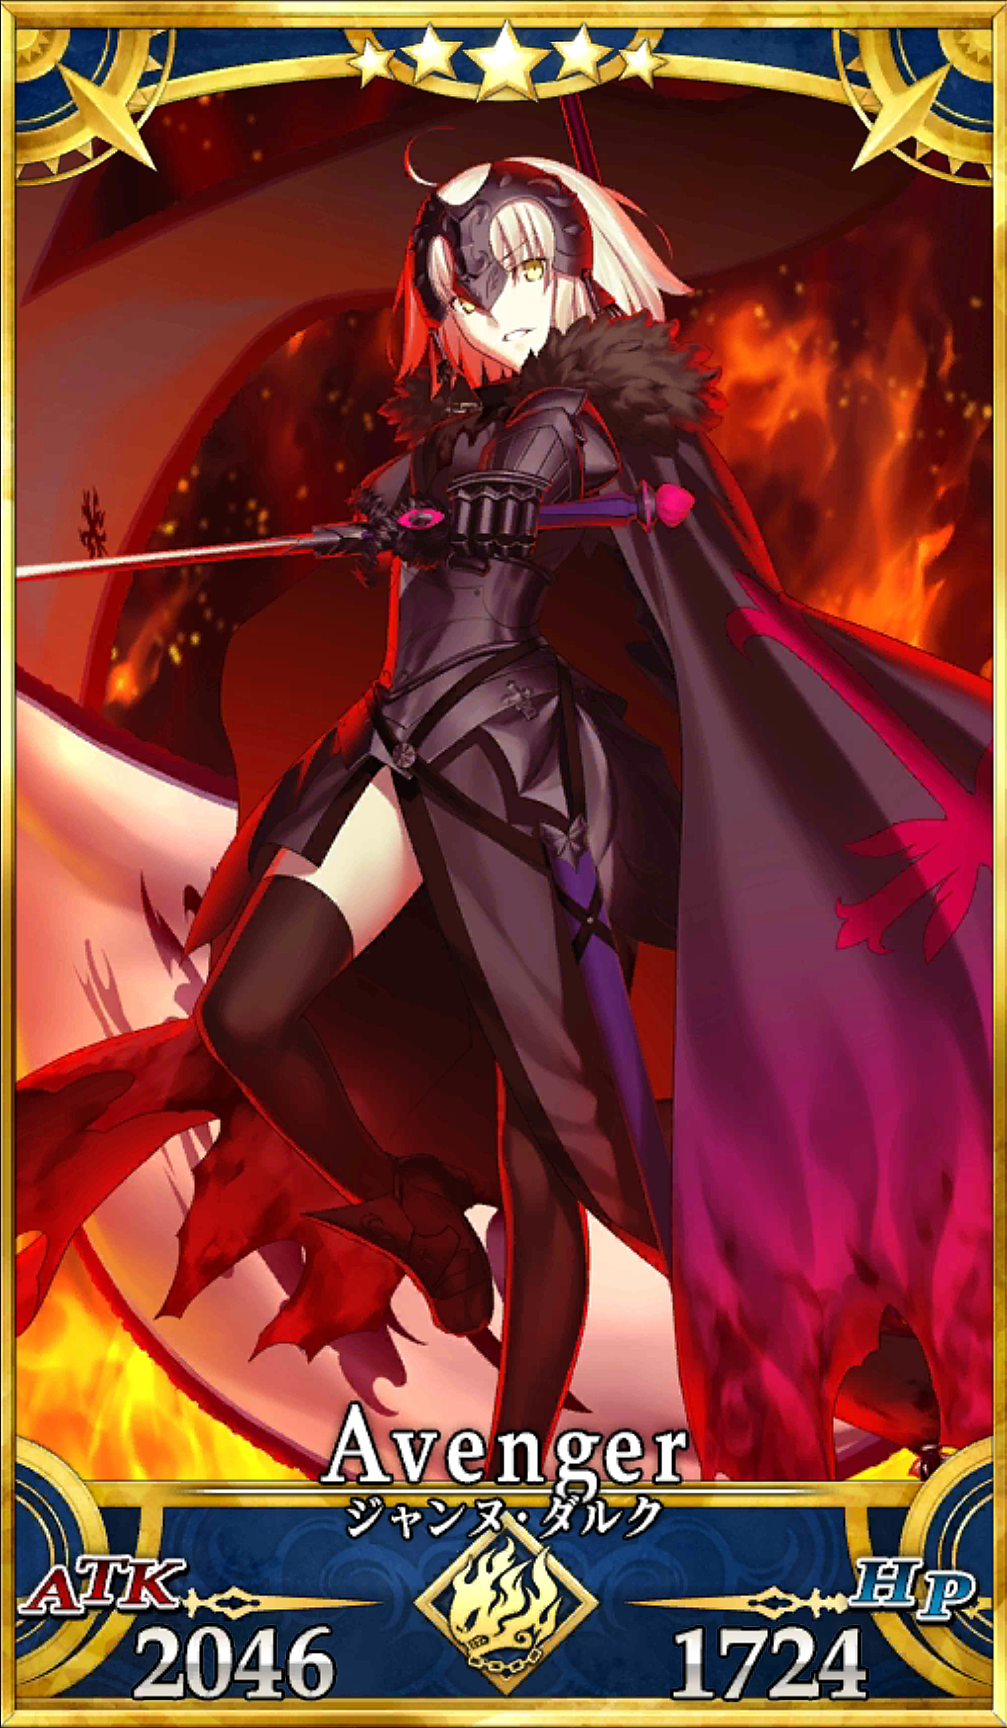 Image Avengercardborder2 Png Fate Grand Order Wikia